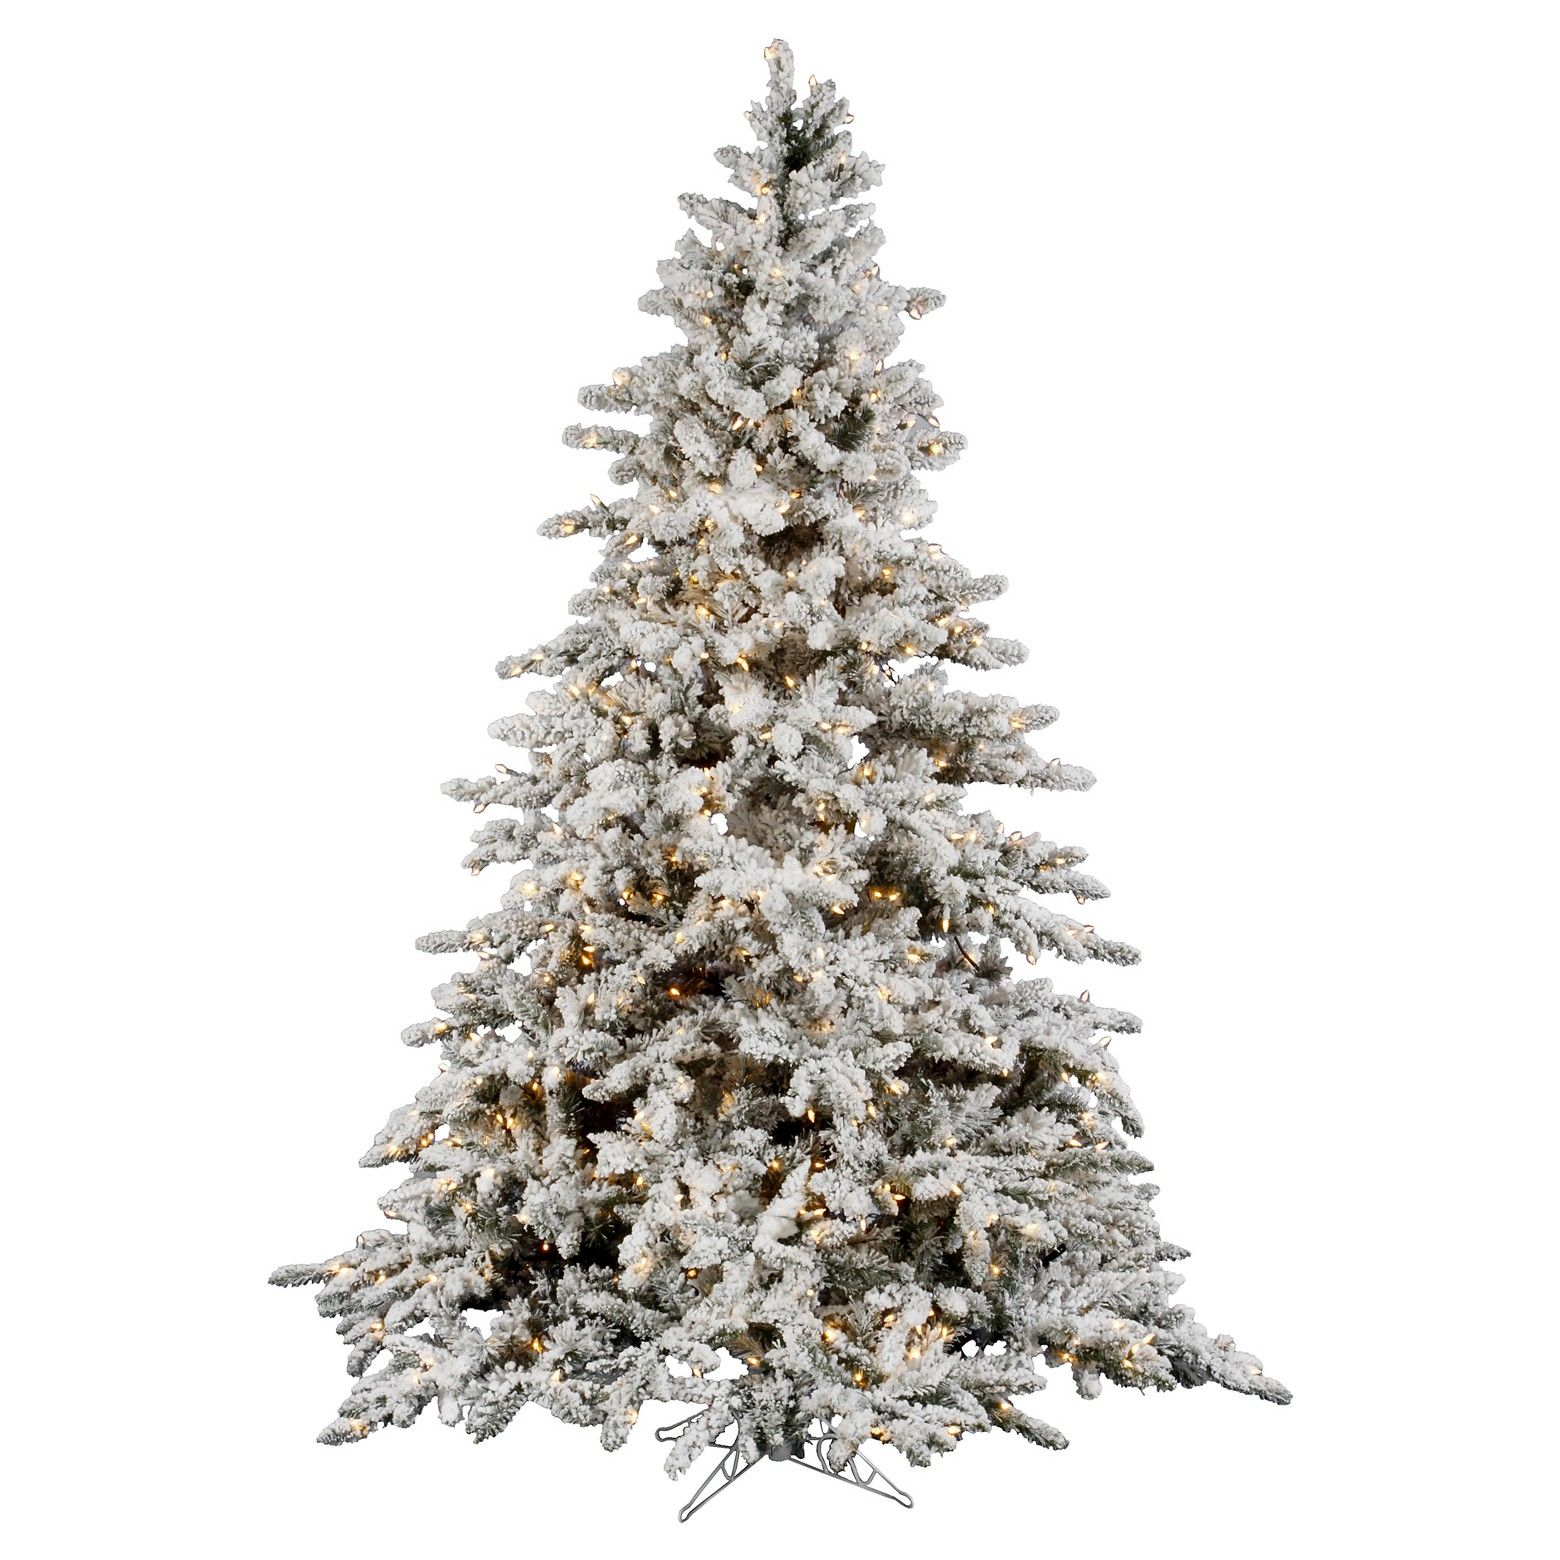 Best Deal On Artificial Christmas Trees: The 7.5' Pre-Lit Artificial Christmas Tree White Flocked